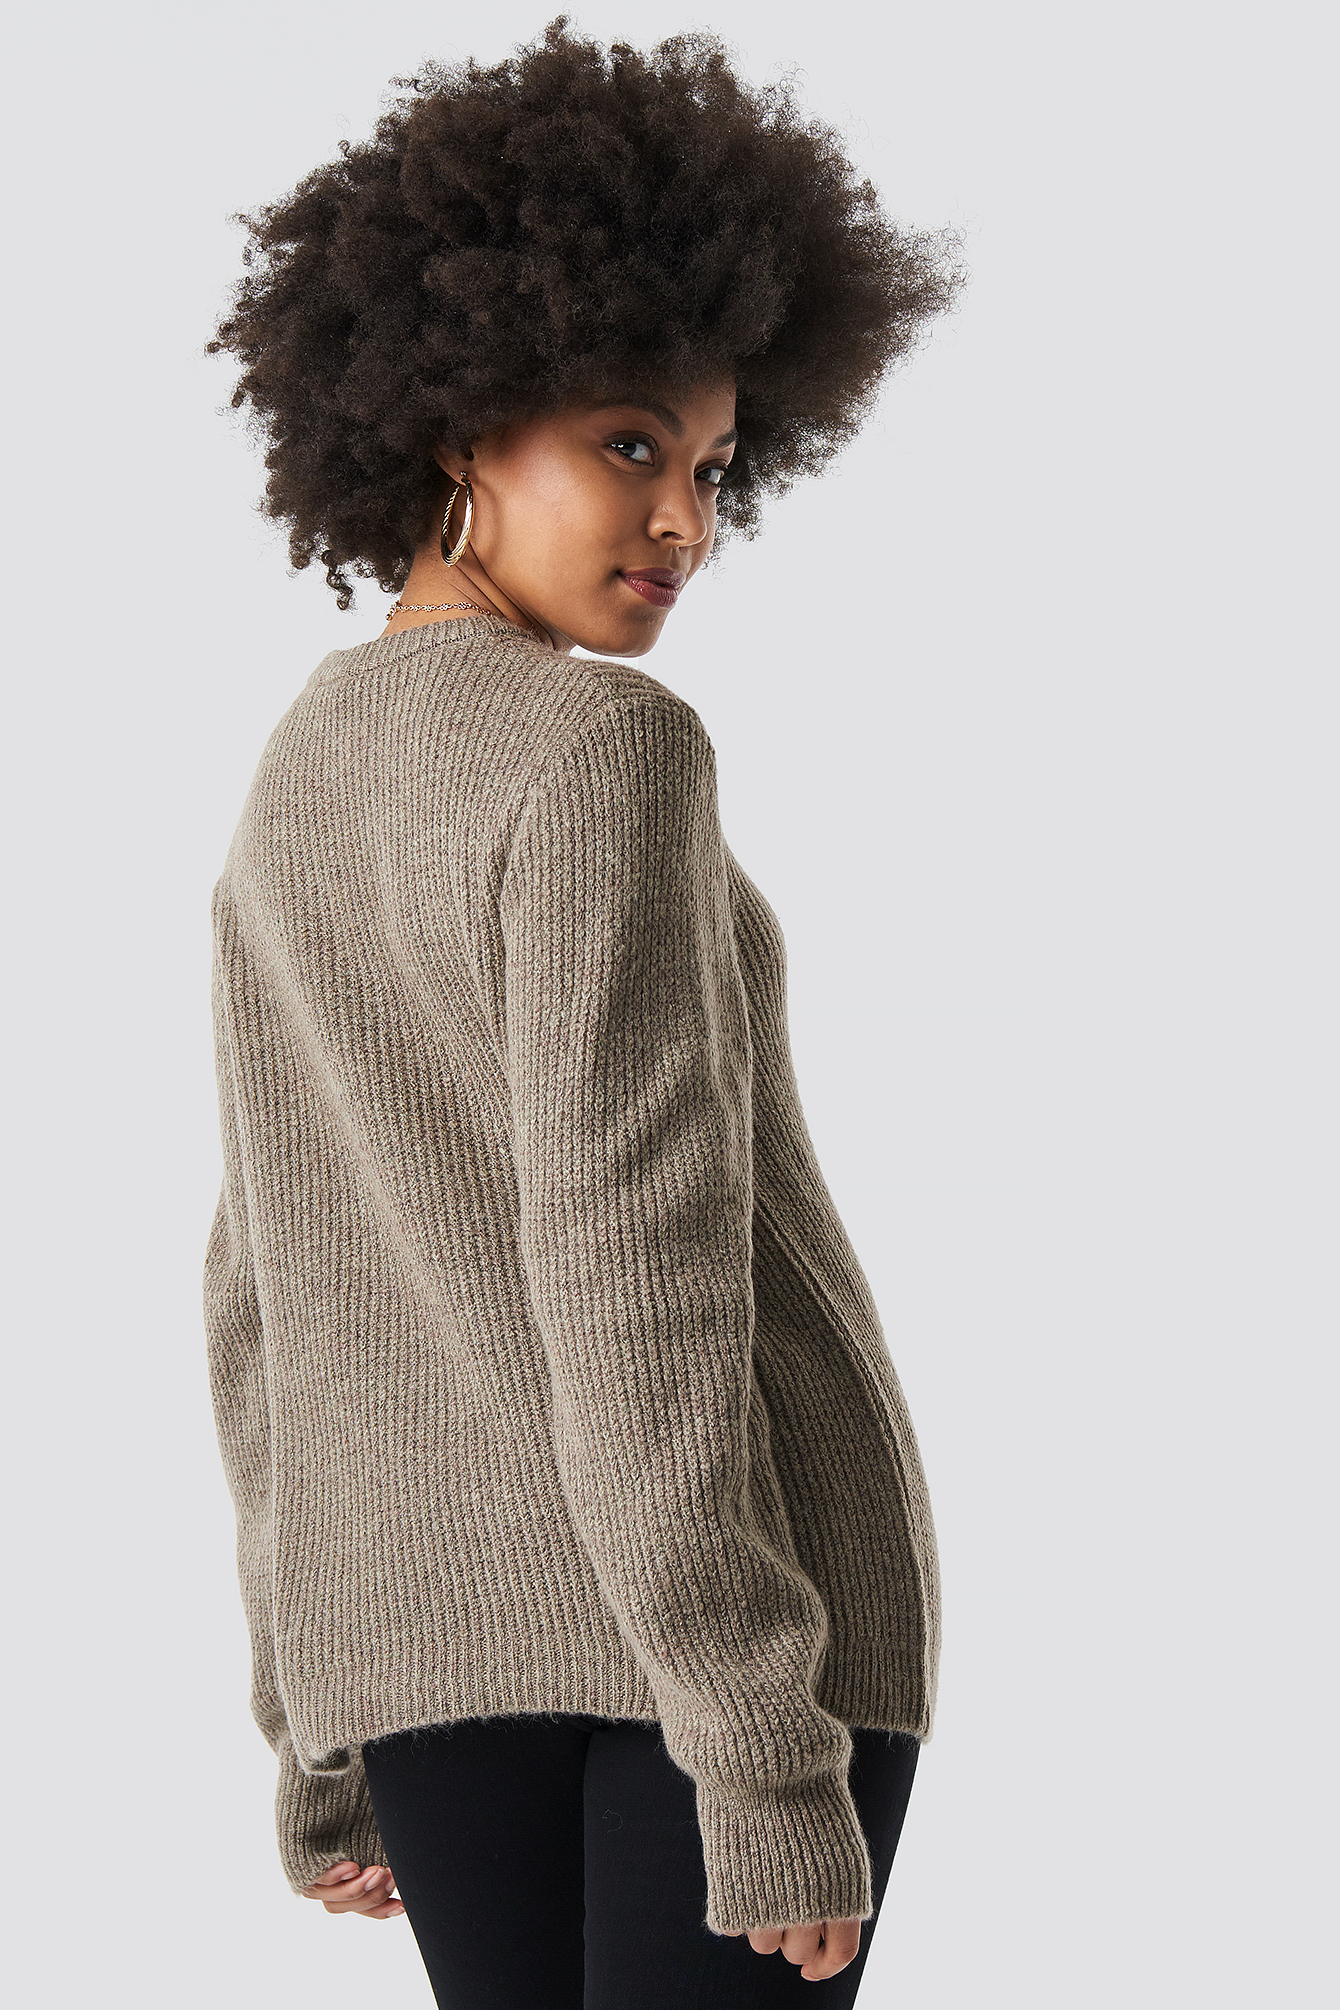 Beige Crew Neck Knitted Sweater